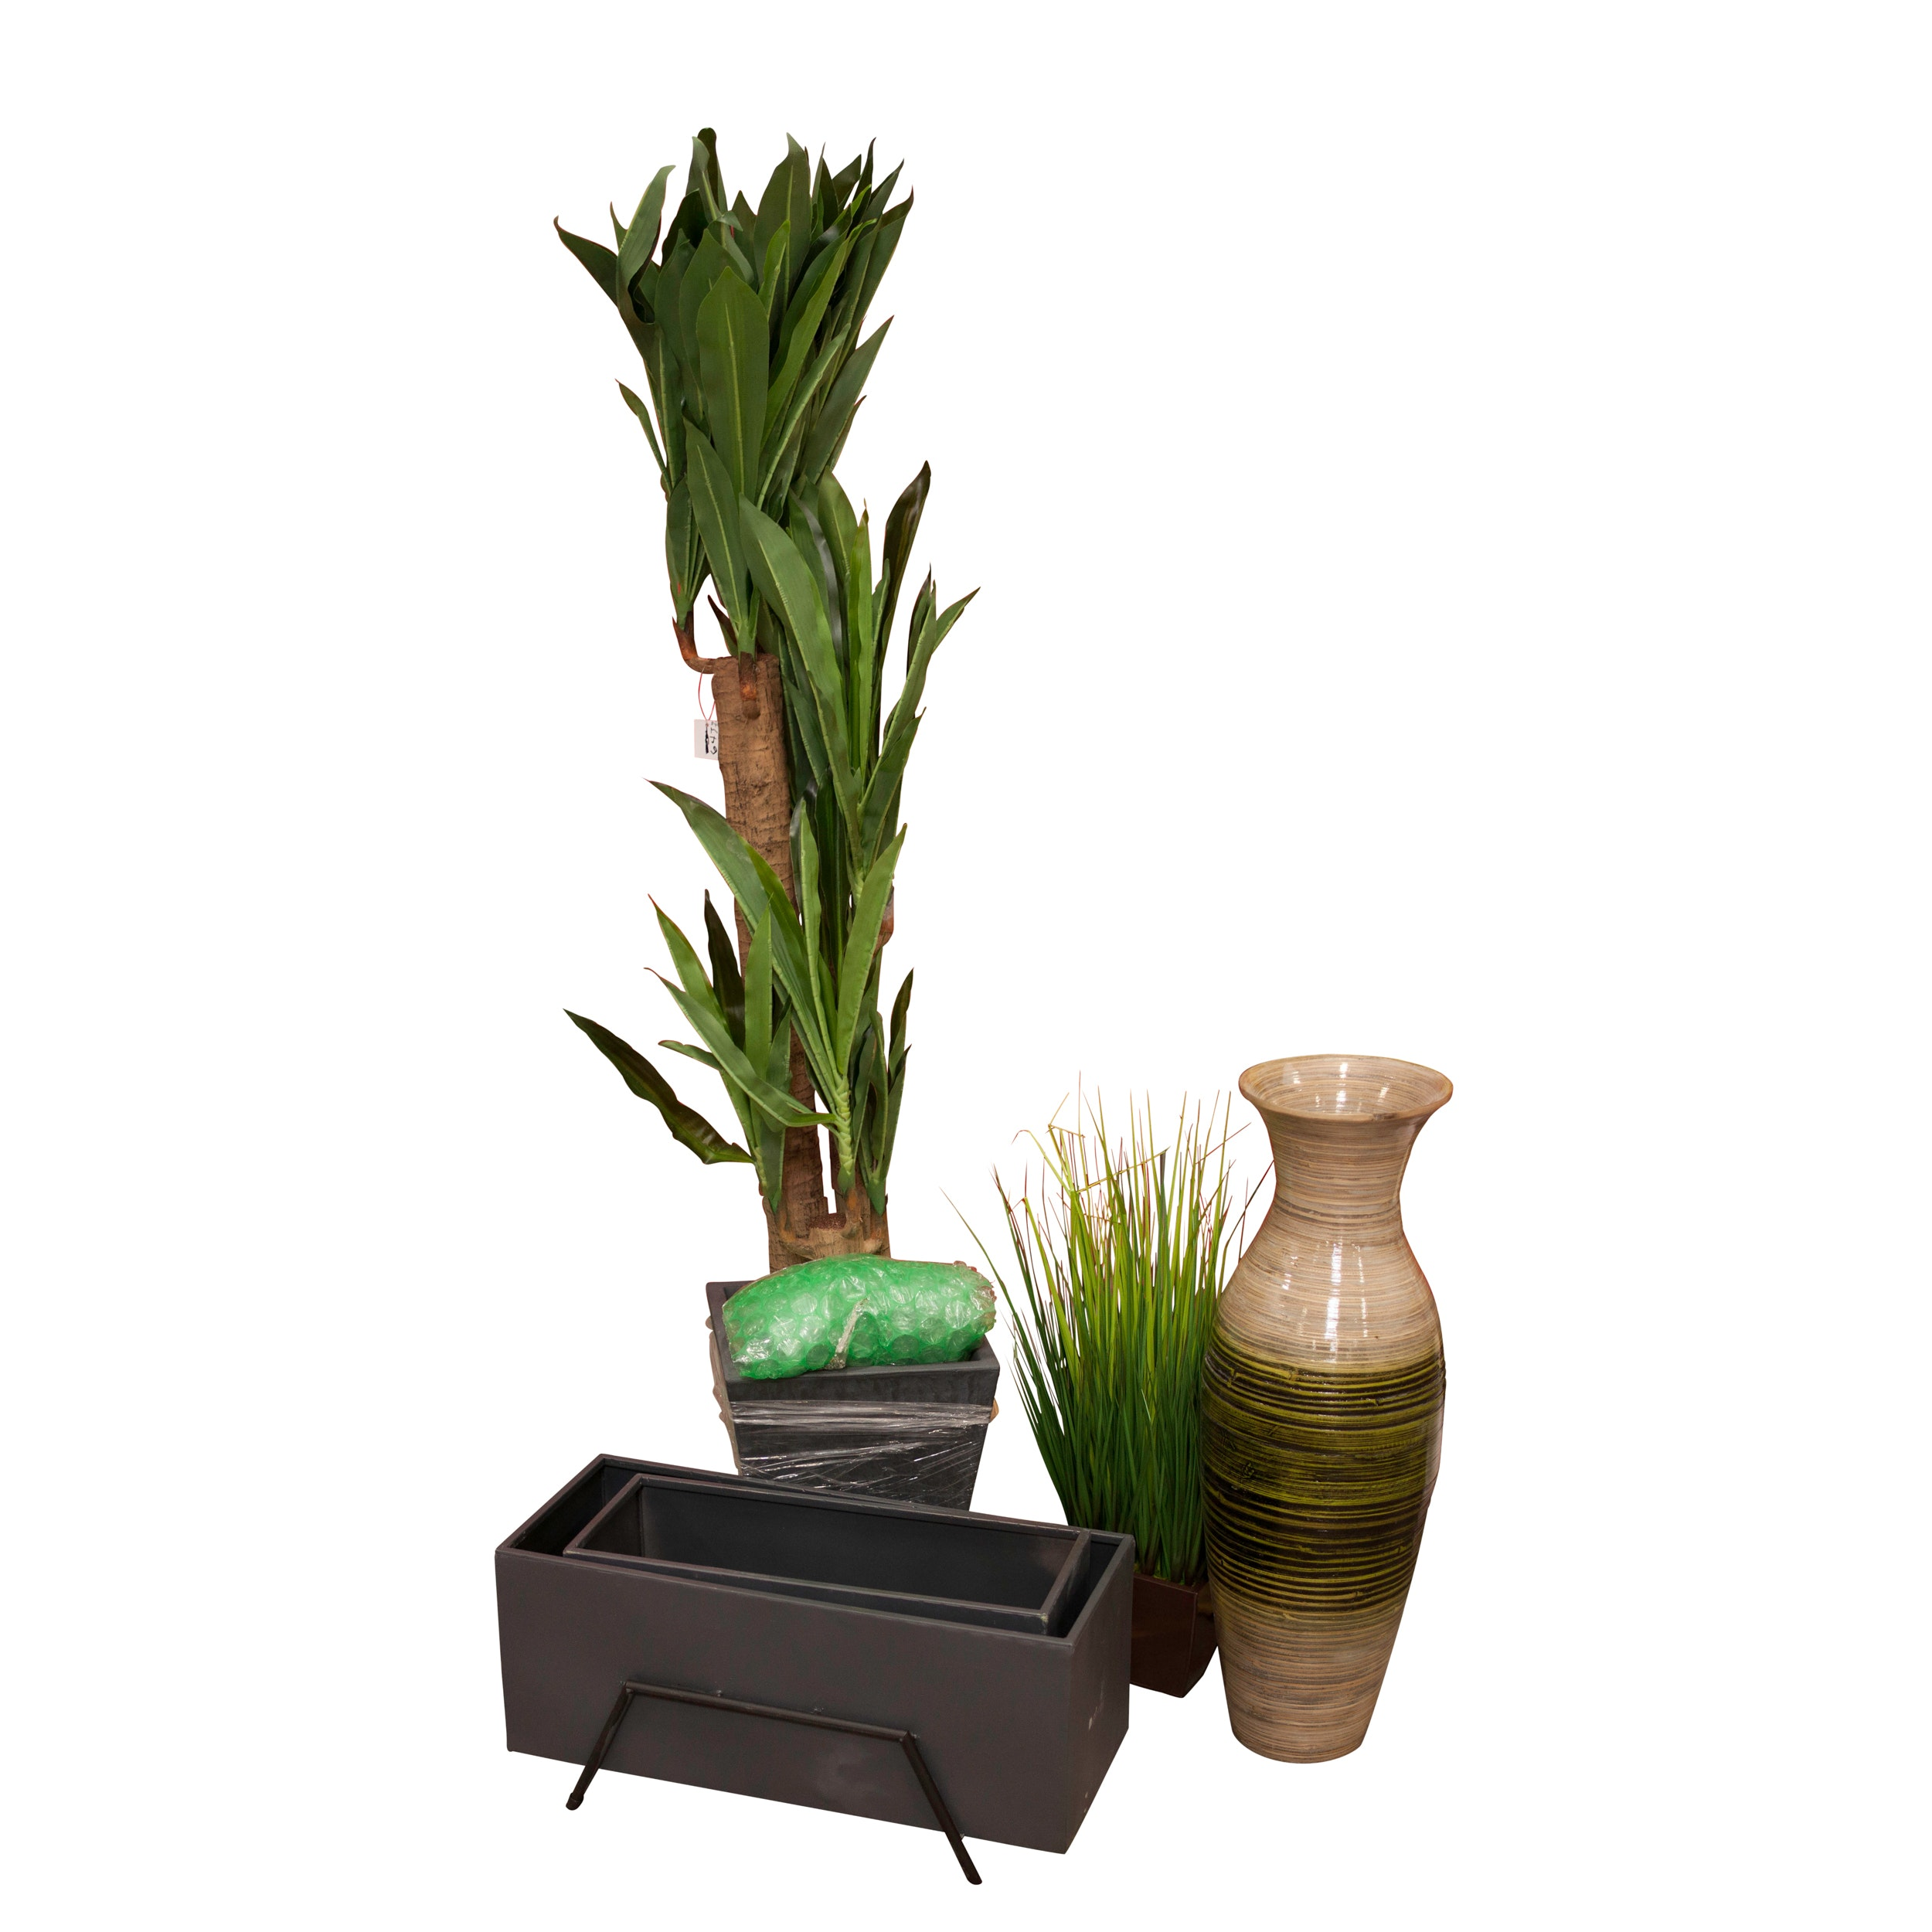 Artificial Plants and Planters Including a Bamboo Vase, Contemporary